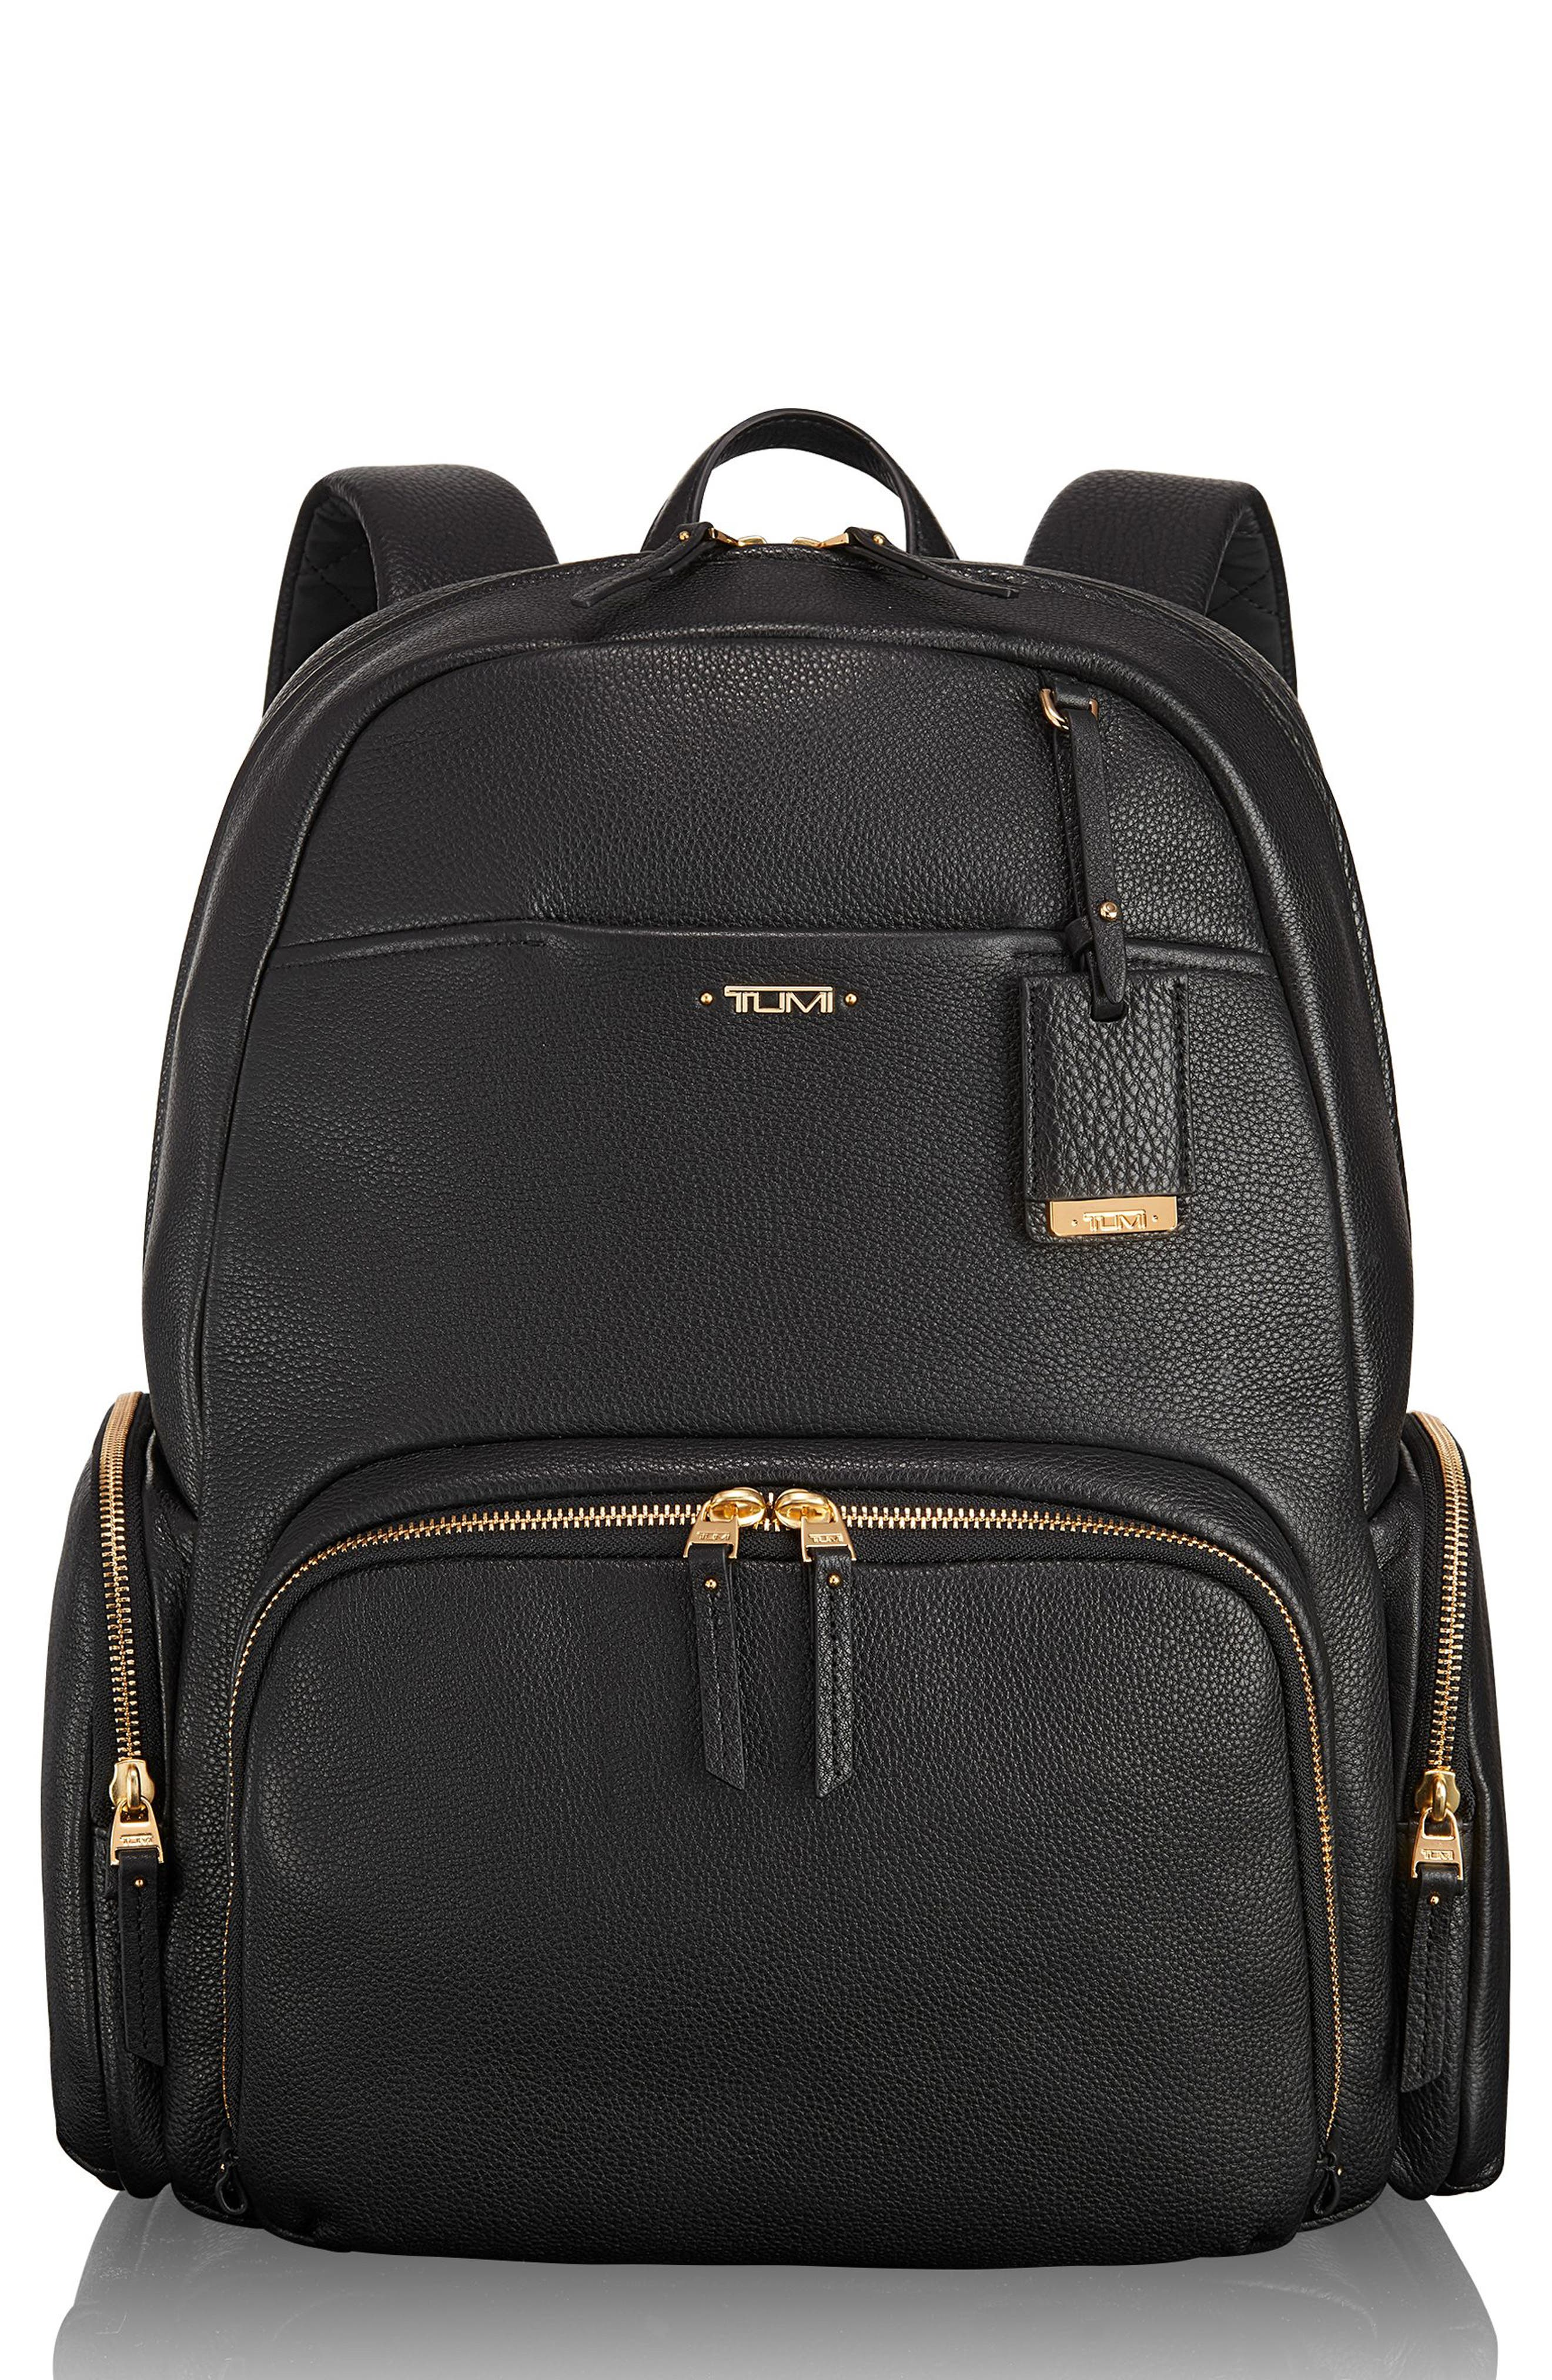 Calais Leather Computer Backpack,                         Main,                         color, Black